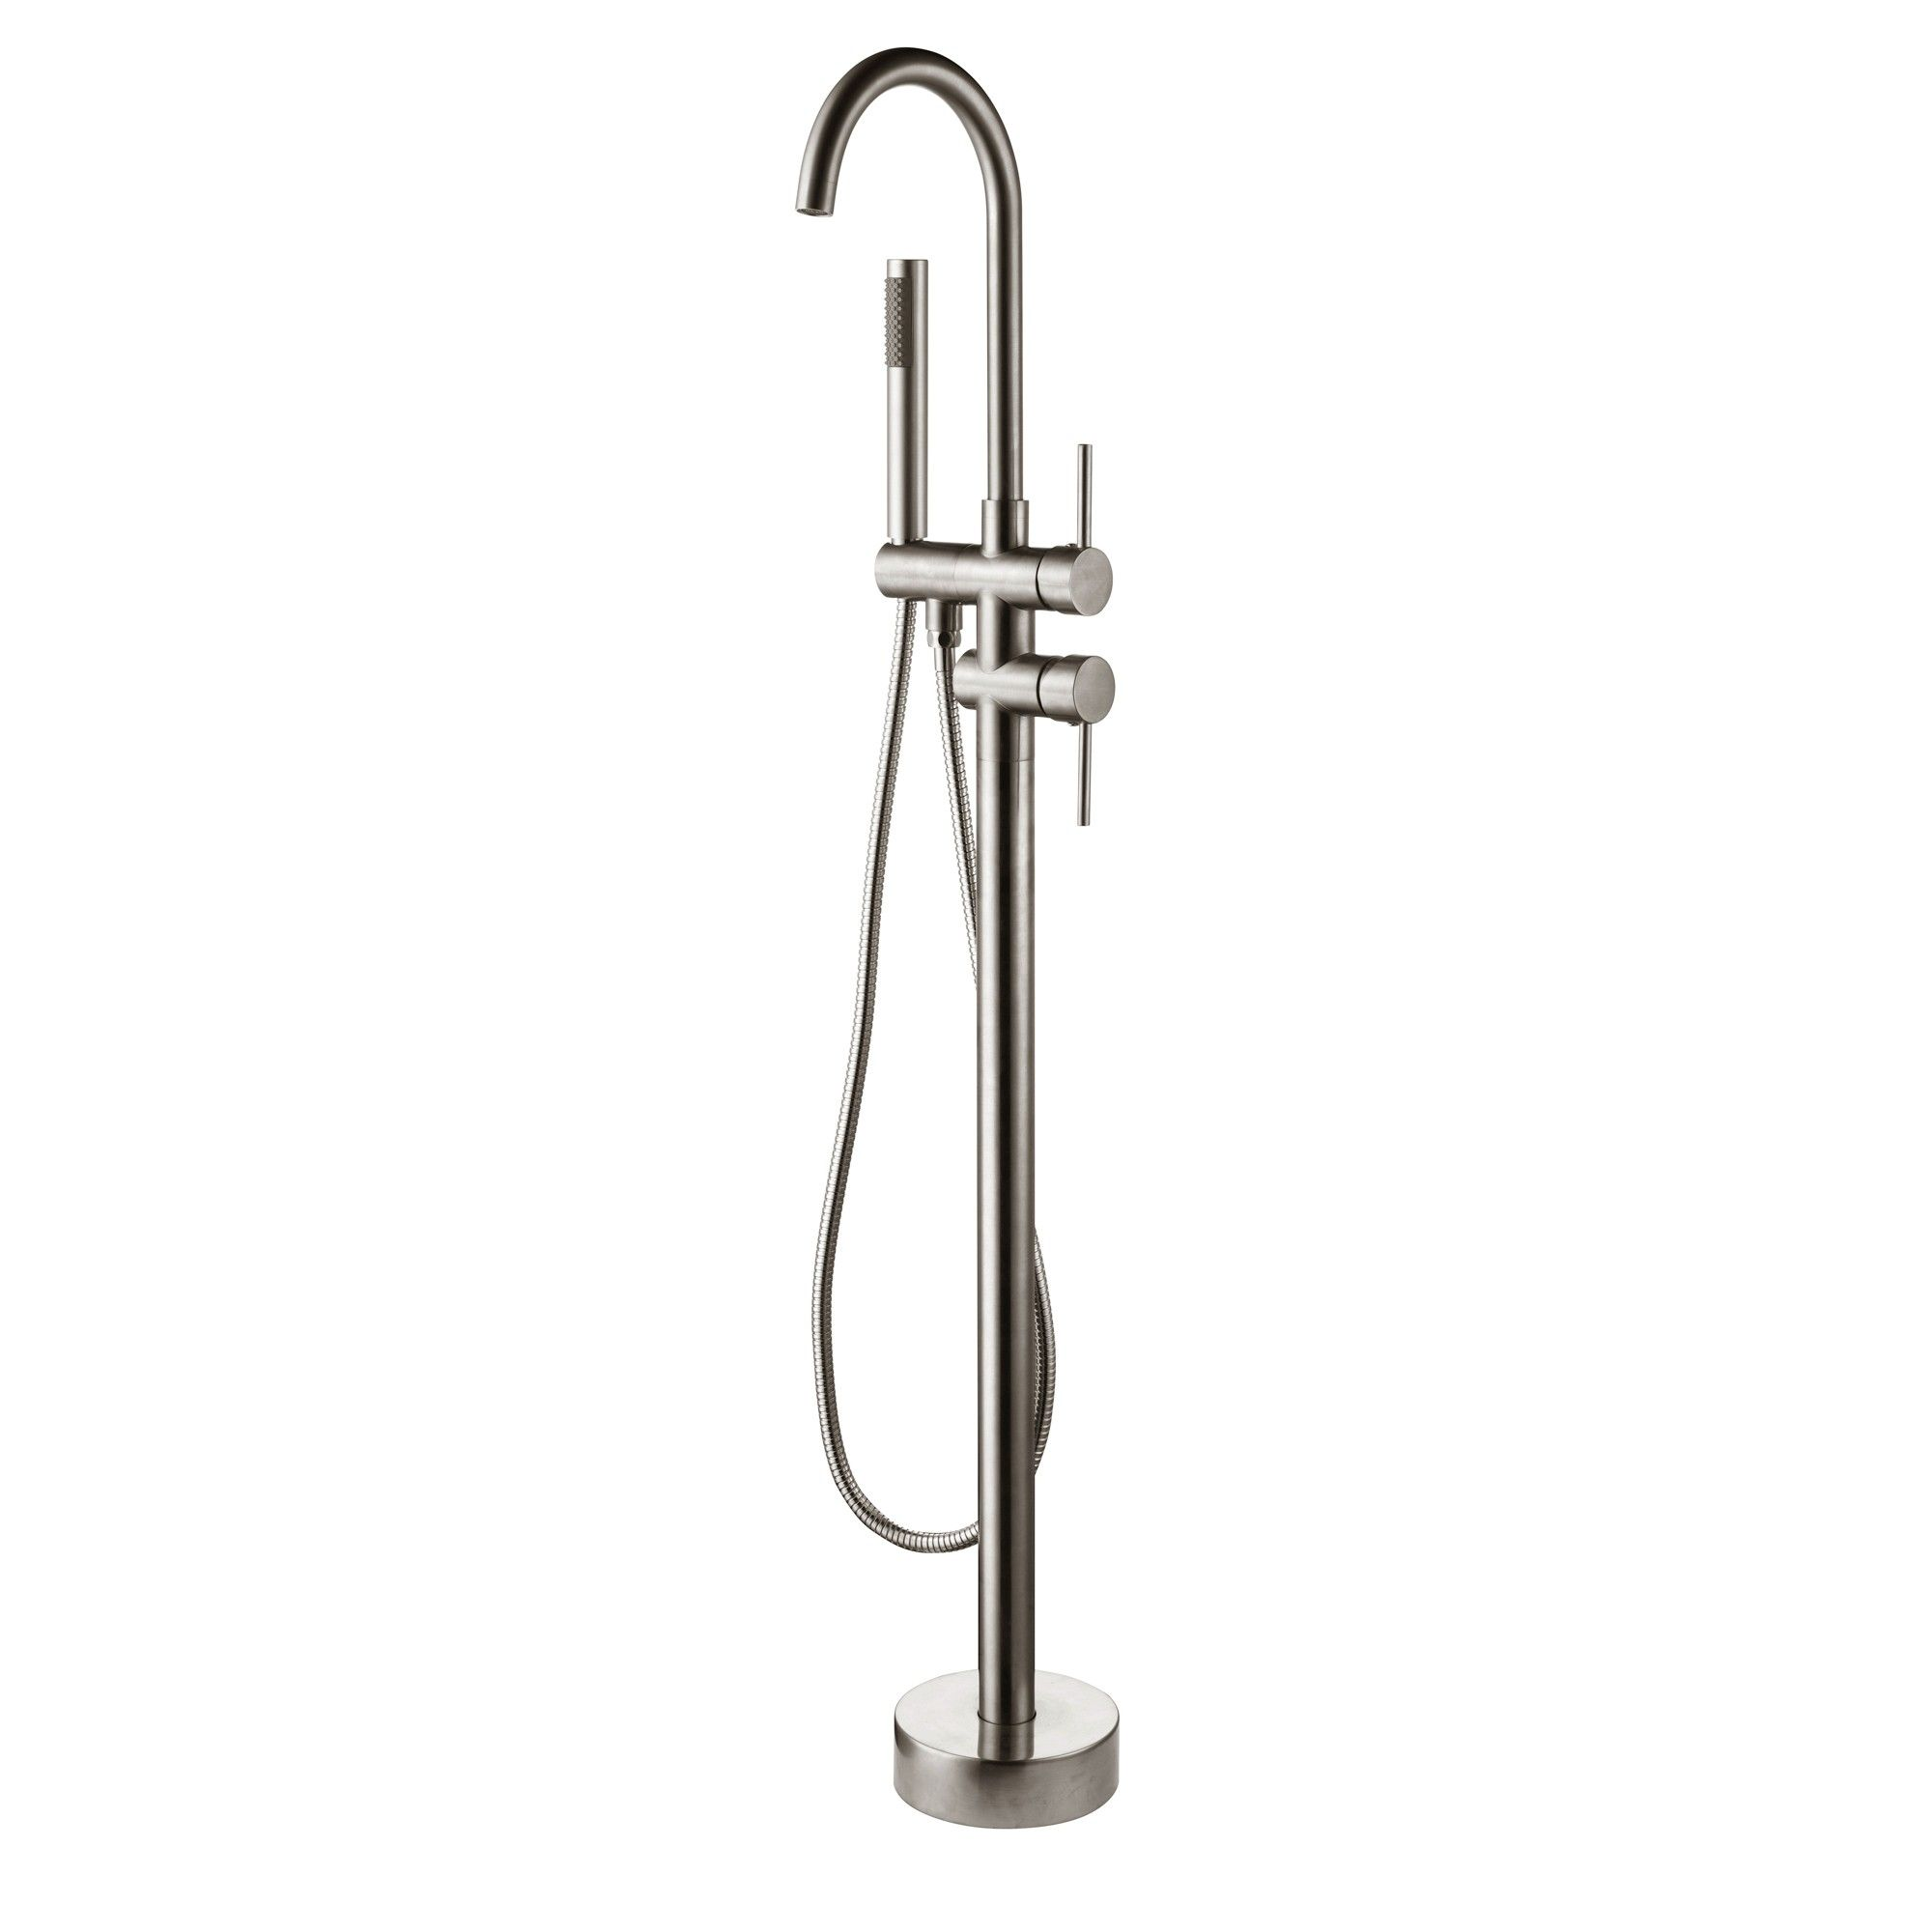 Brewst Modern Freestanding Bathtub Faucet Tub Filler Brushed Nickel ...